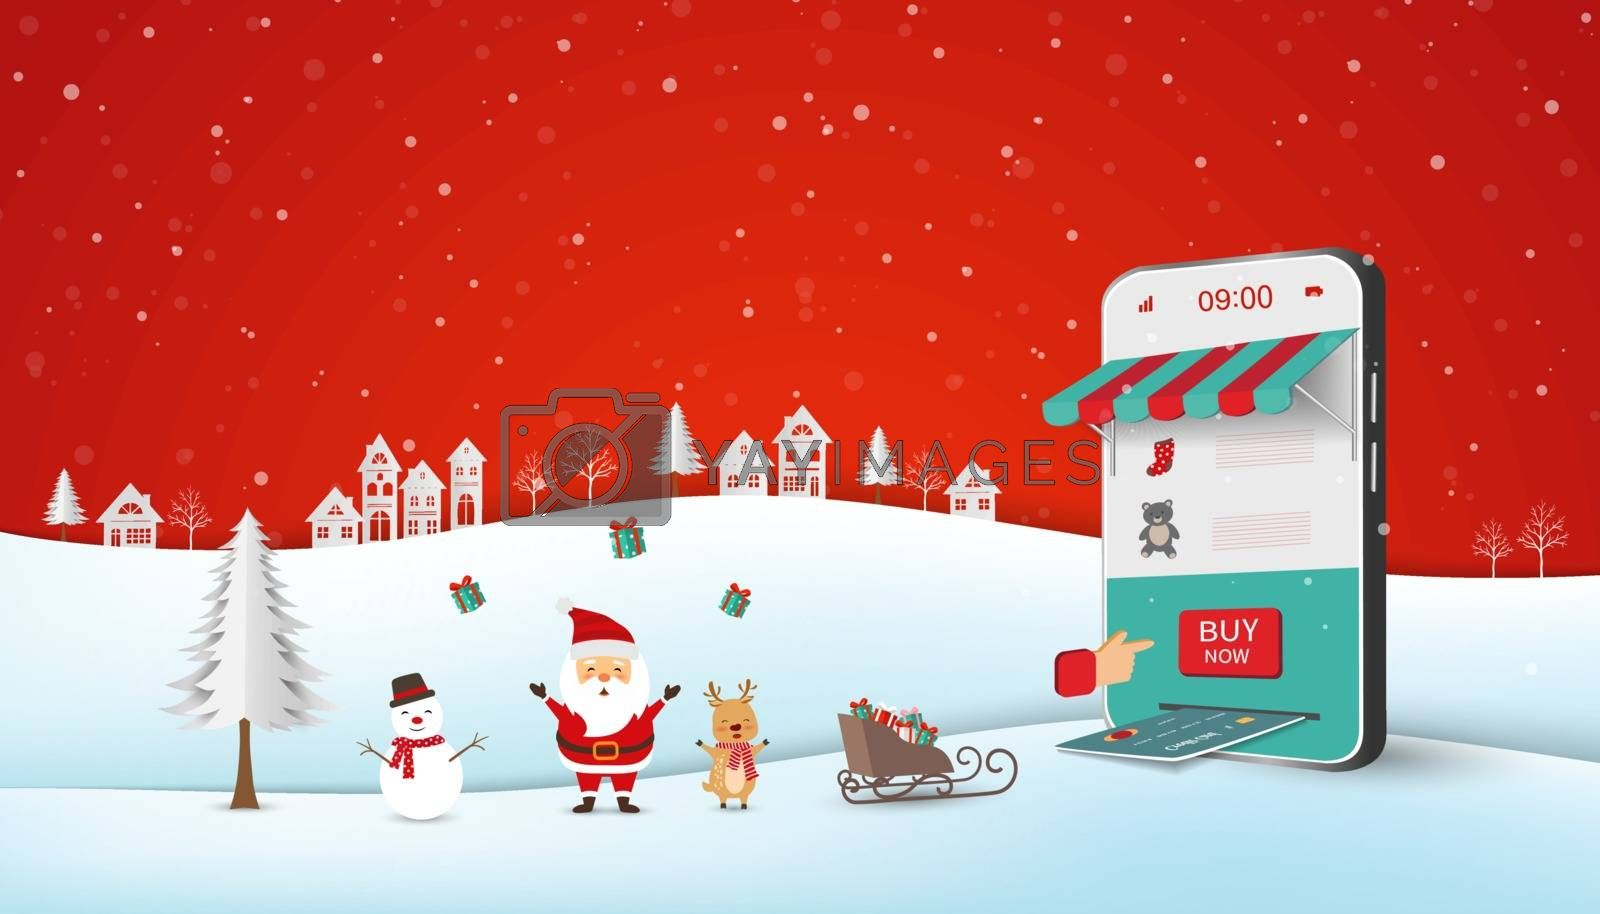 Santa Claus shopping online on website or mobile application,business concept with Merry Christmas and Happy New Year,vector illustration